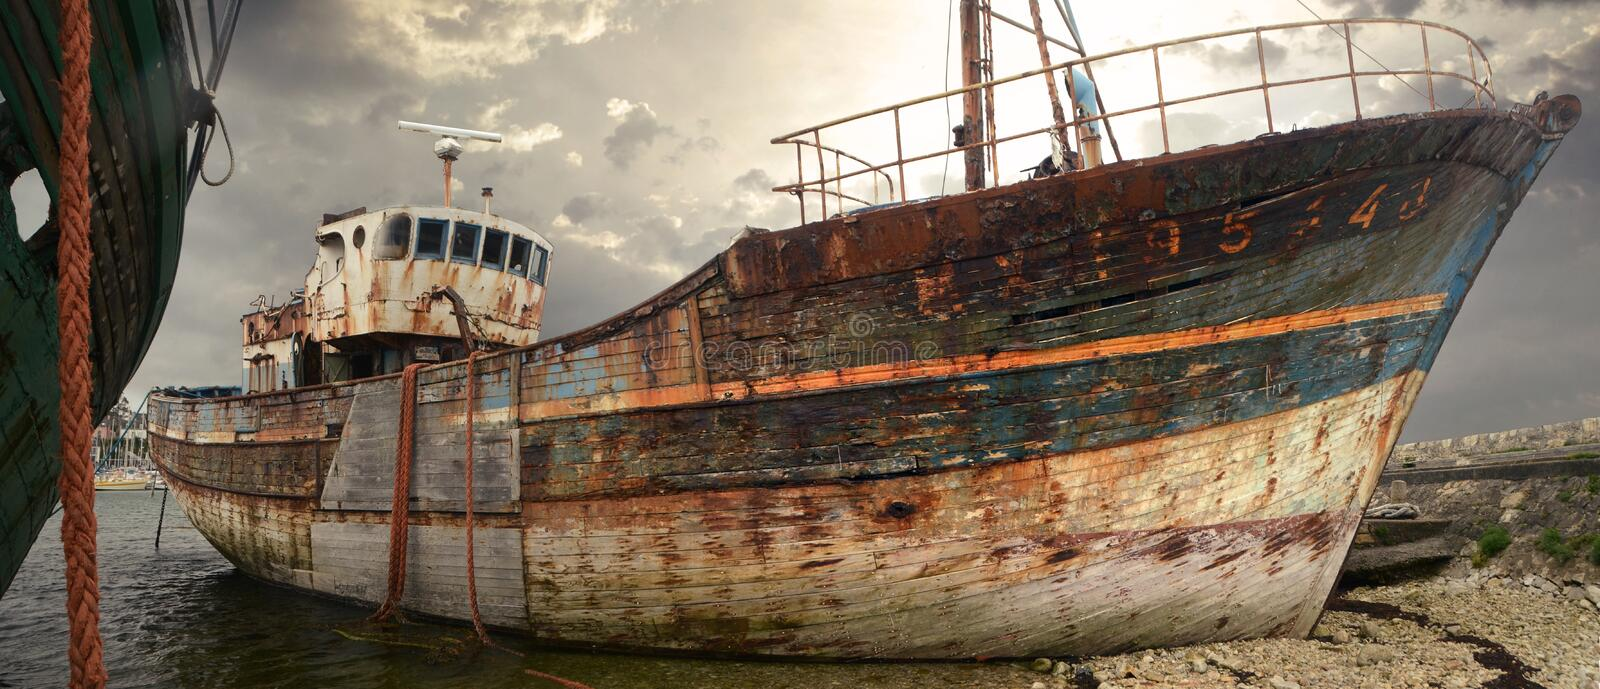 Old fishing boat rusty and wreck royalty free stock photos